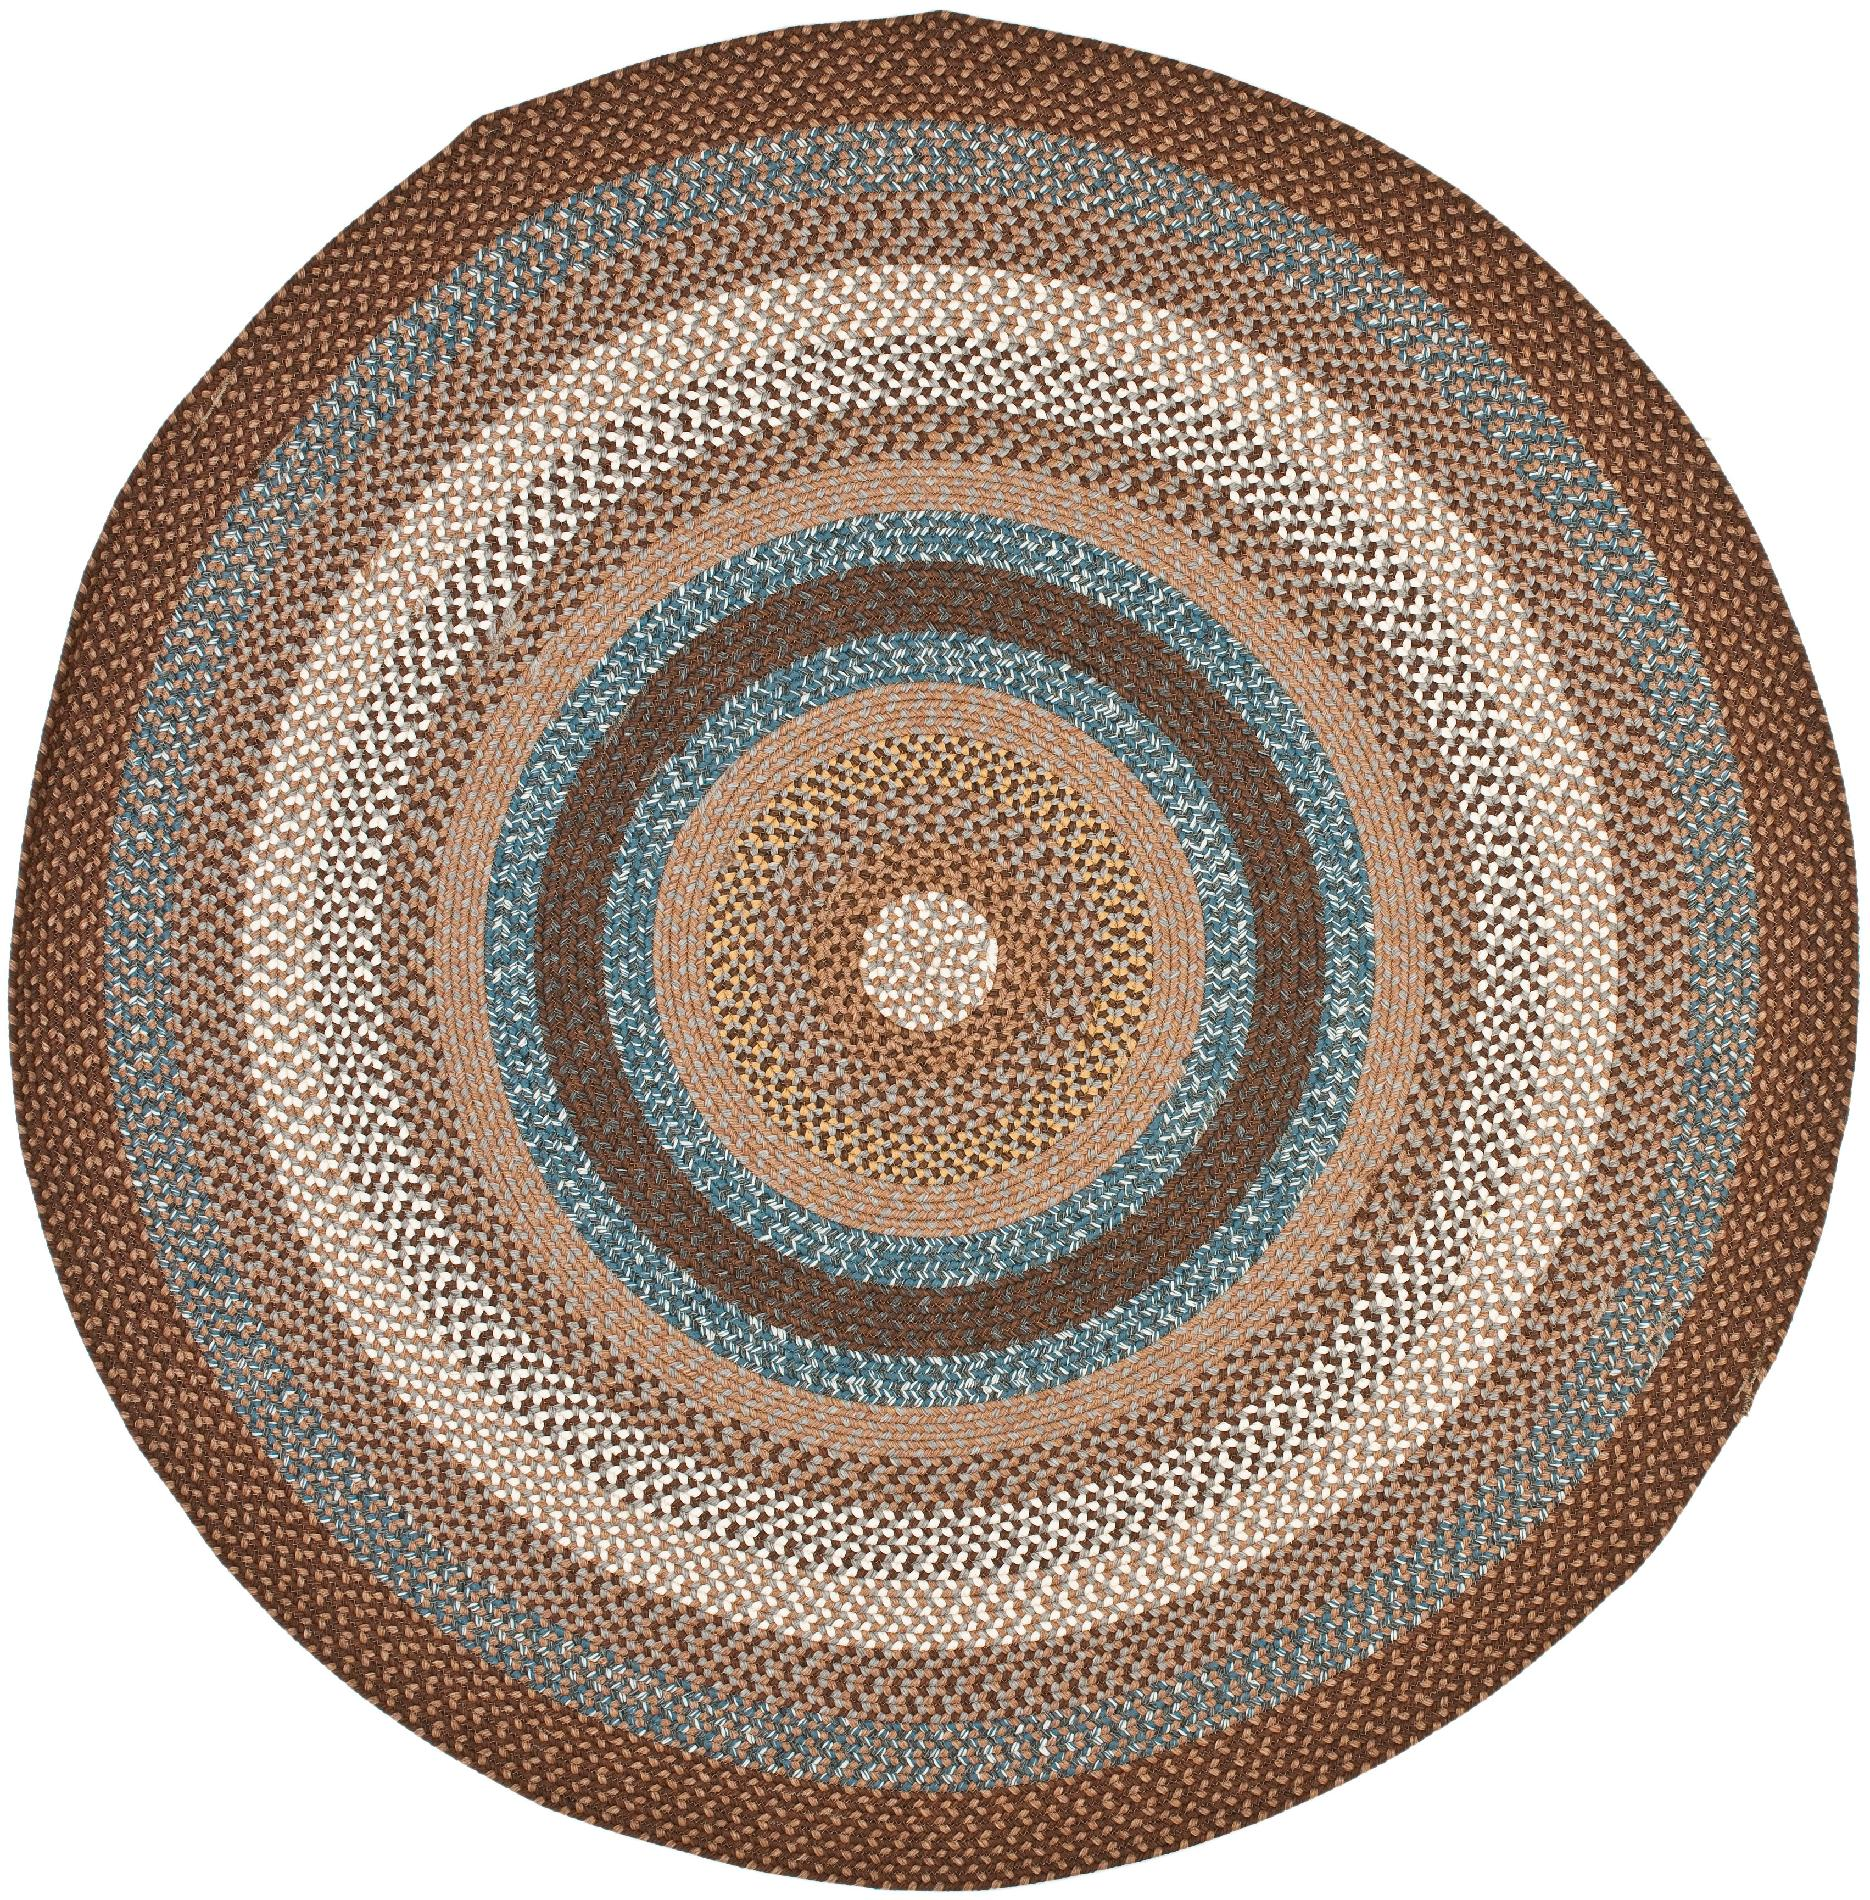 Round Rug Kmart Safavieh Braided Hand Woven Reversible Area Rug Brd313